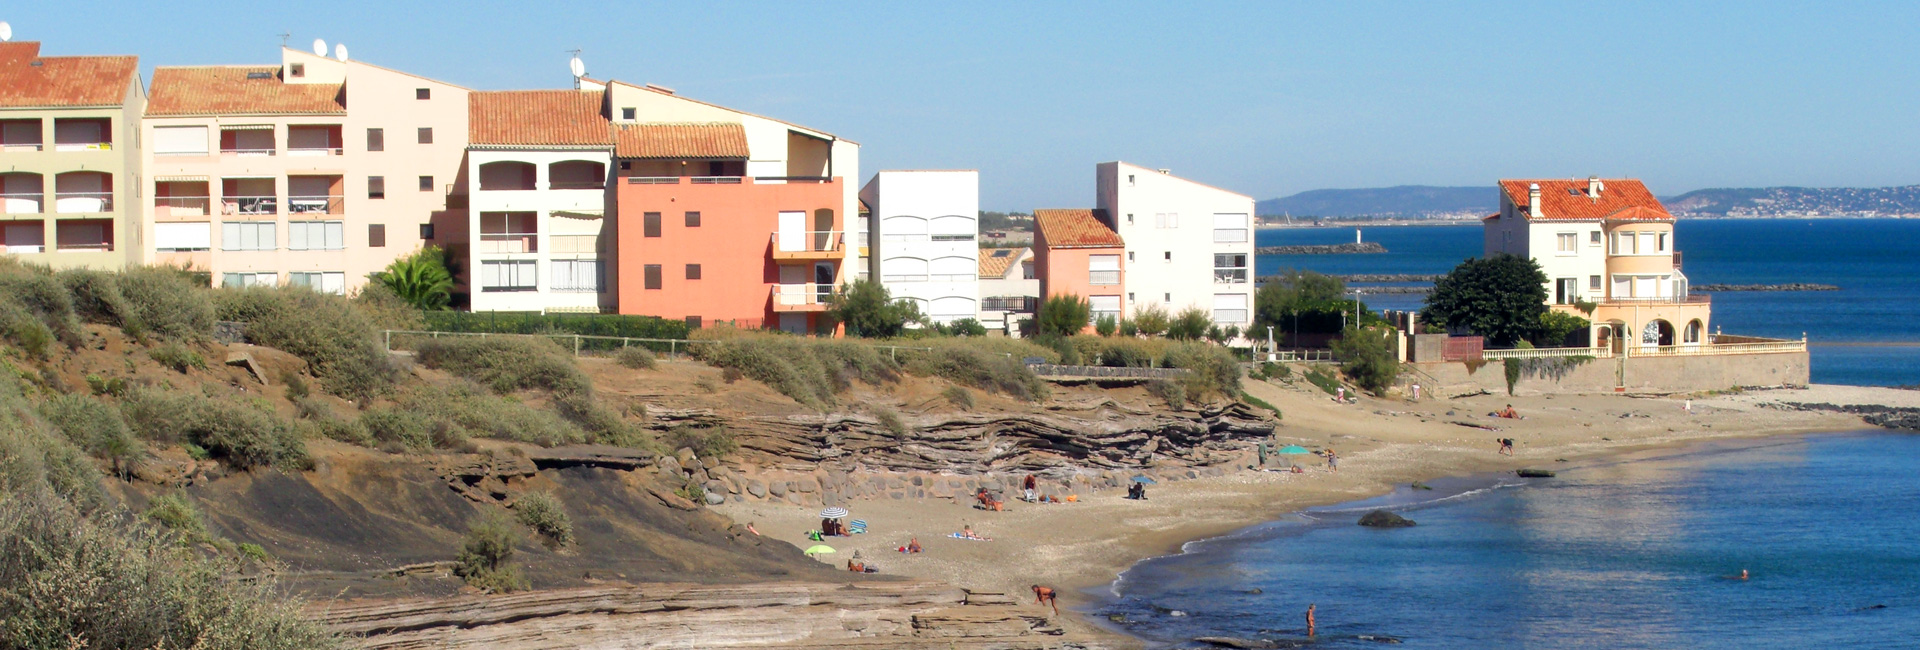 Location Cap d'Agde, Centre Port, Orion